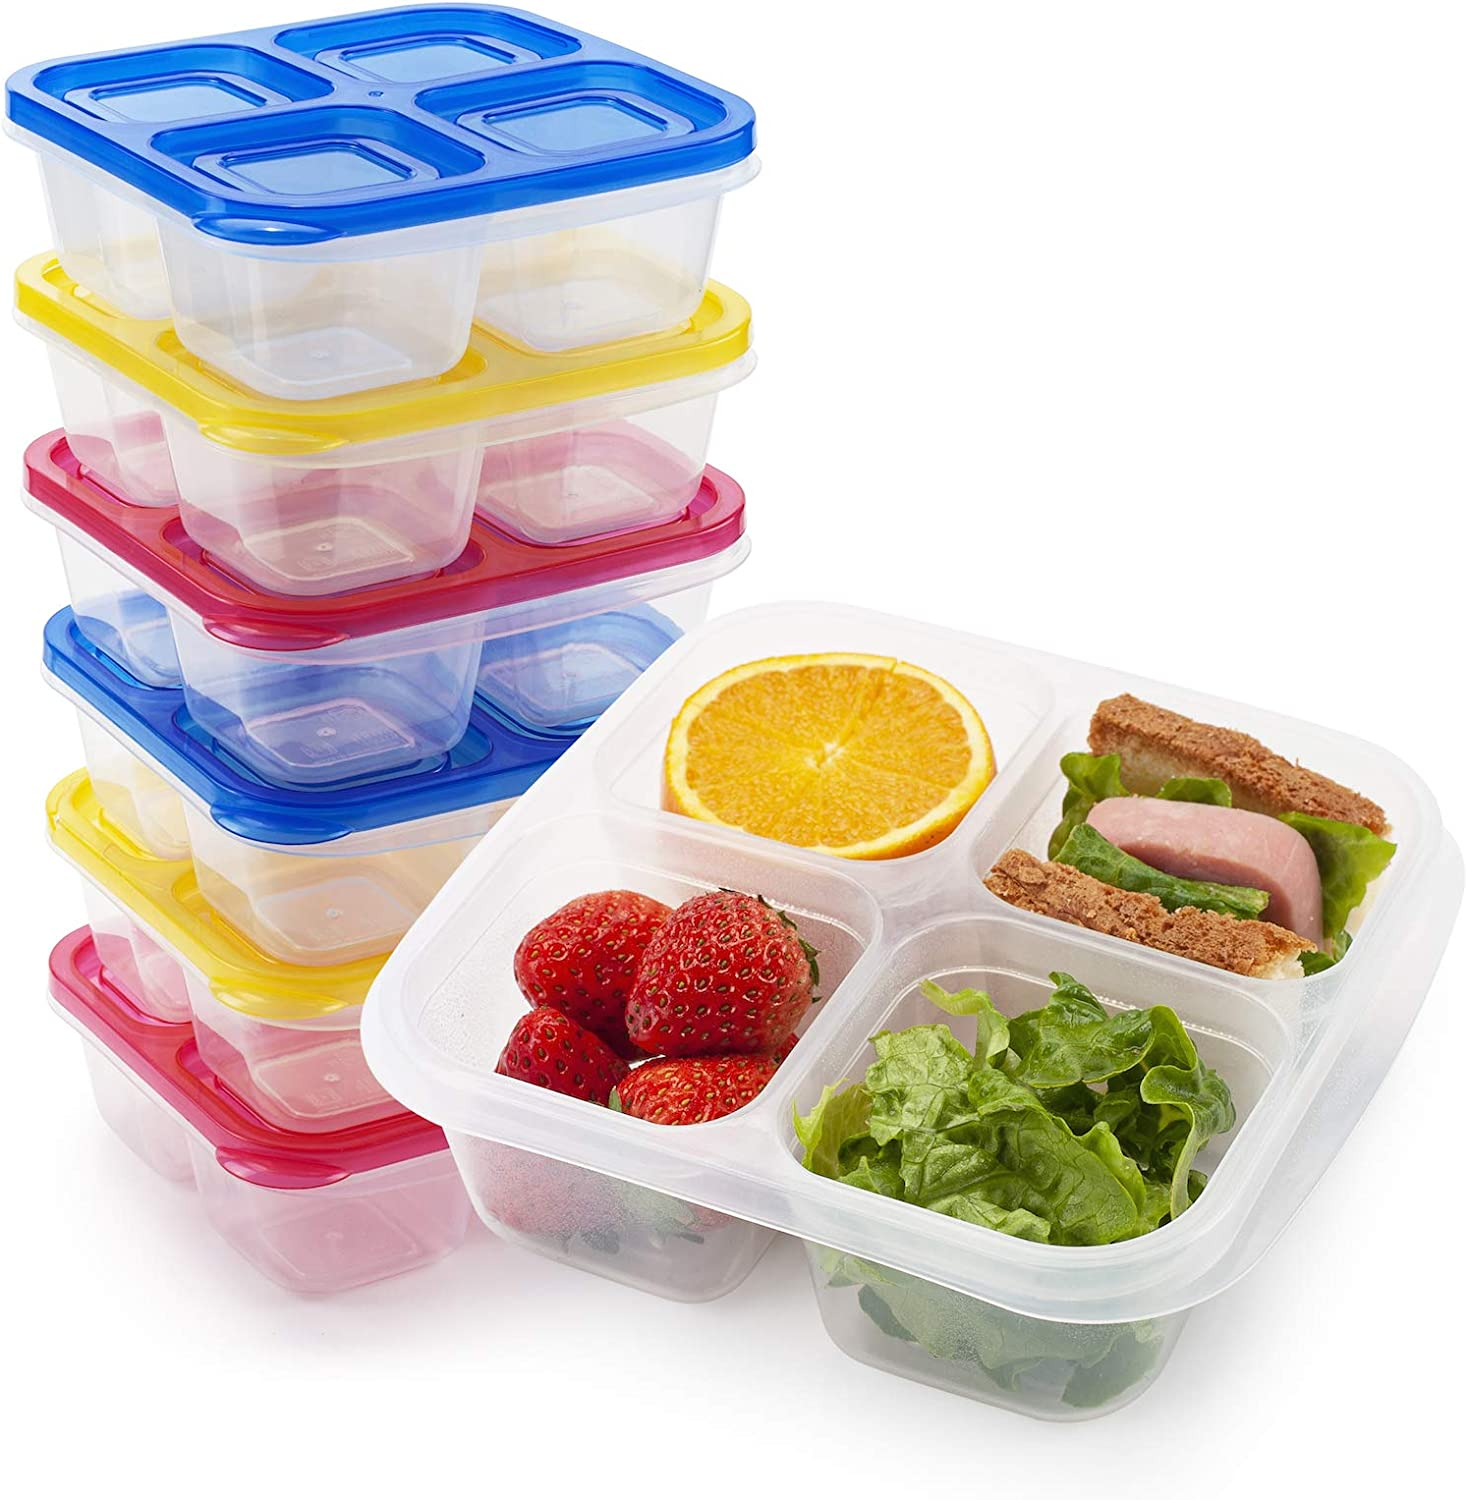 Freshmage Bento Snack Food Containers, Set of 6 Reusable 4 Compartments Leakproof Food Meal Prep Containers for School and Work